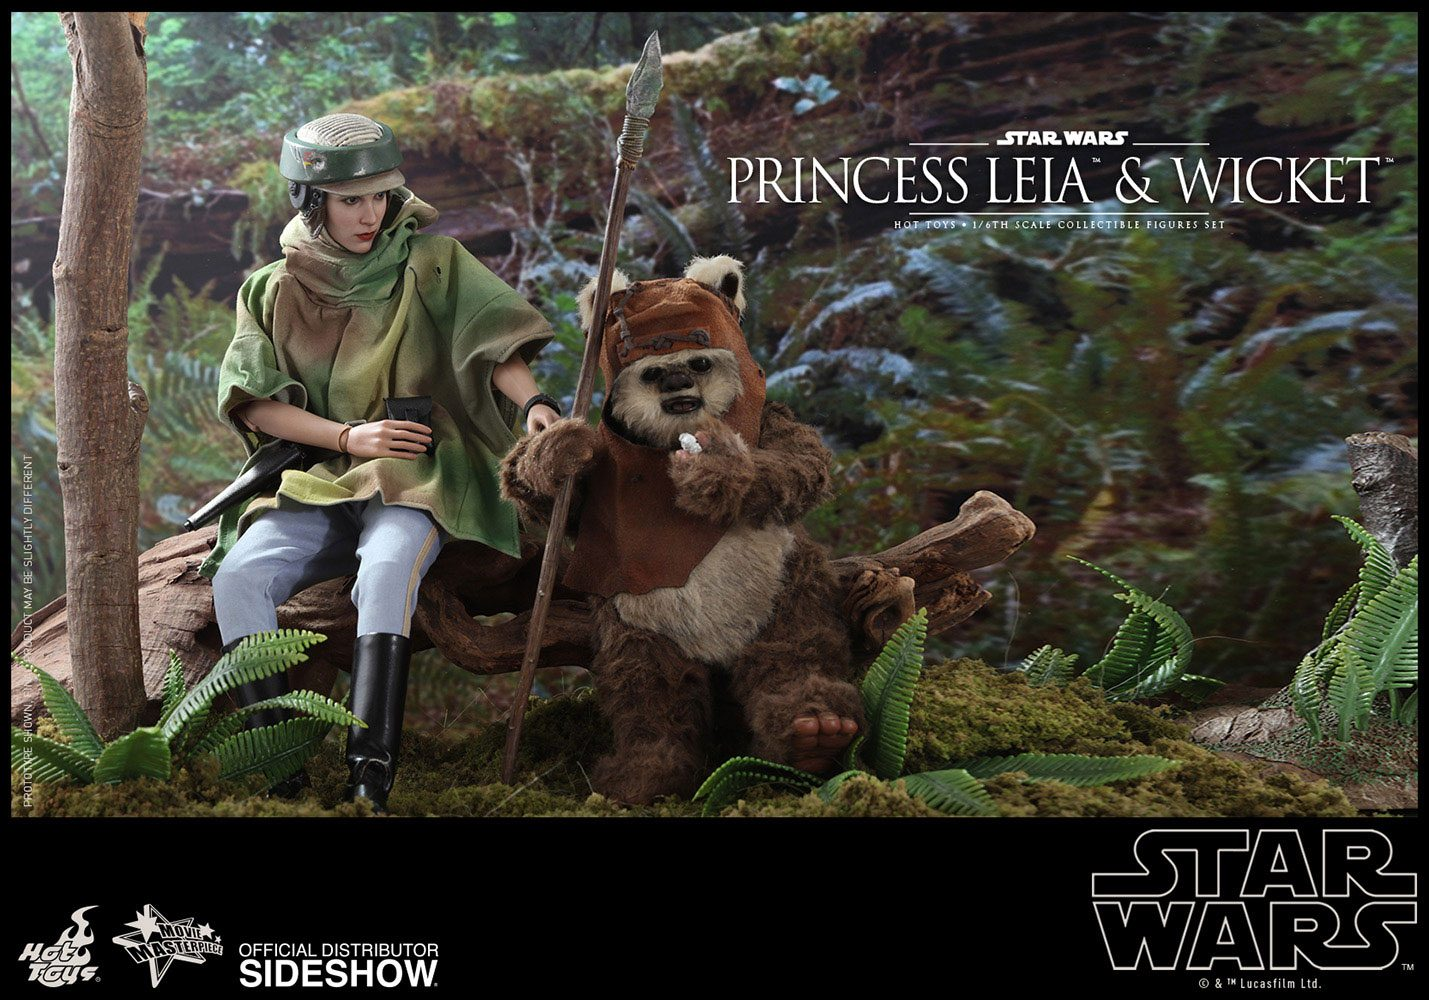 Princess Leia Wicket Sixth Scale Figure Set By Hot Toys Star Wars Episode Vi Return Of The Jedi Movie Masterpiece Series Bunker158 Com